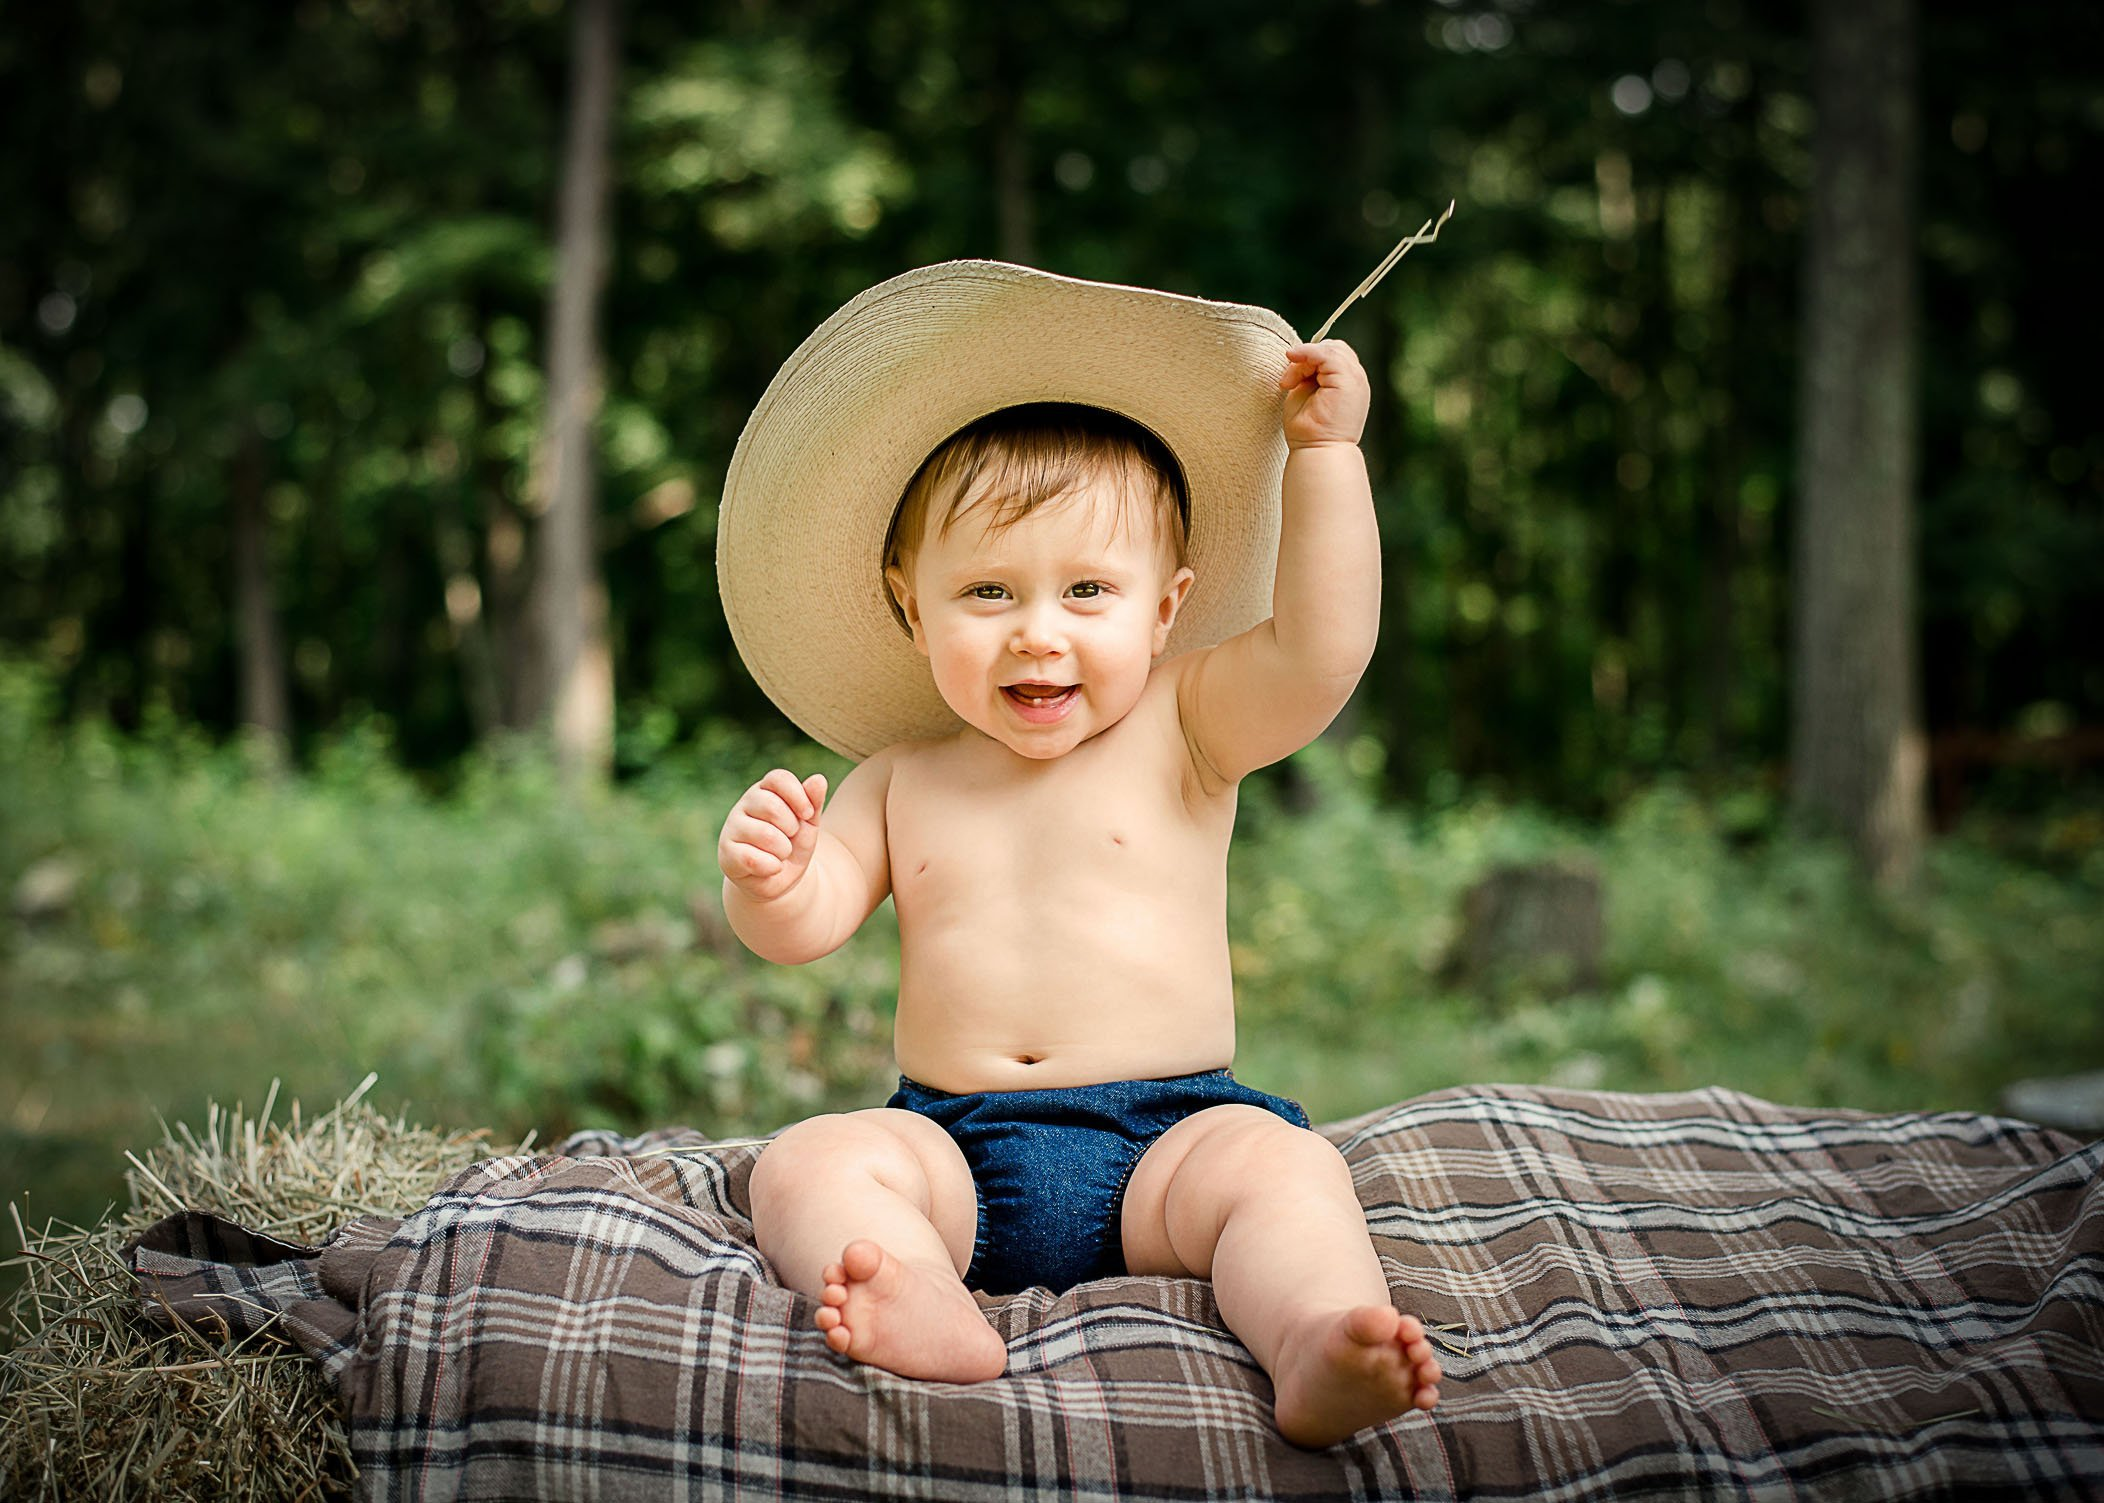 9 mo old baby boy with cowboy hat on sitting outside One Big Happy Photo 6b3701da5e5